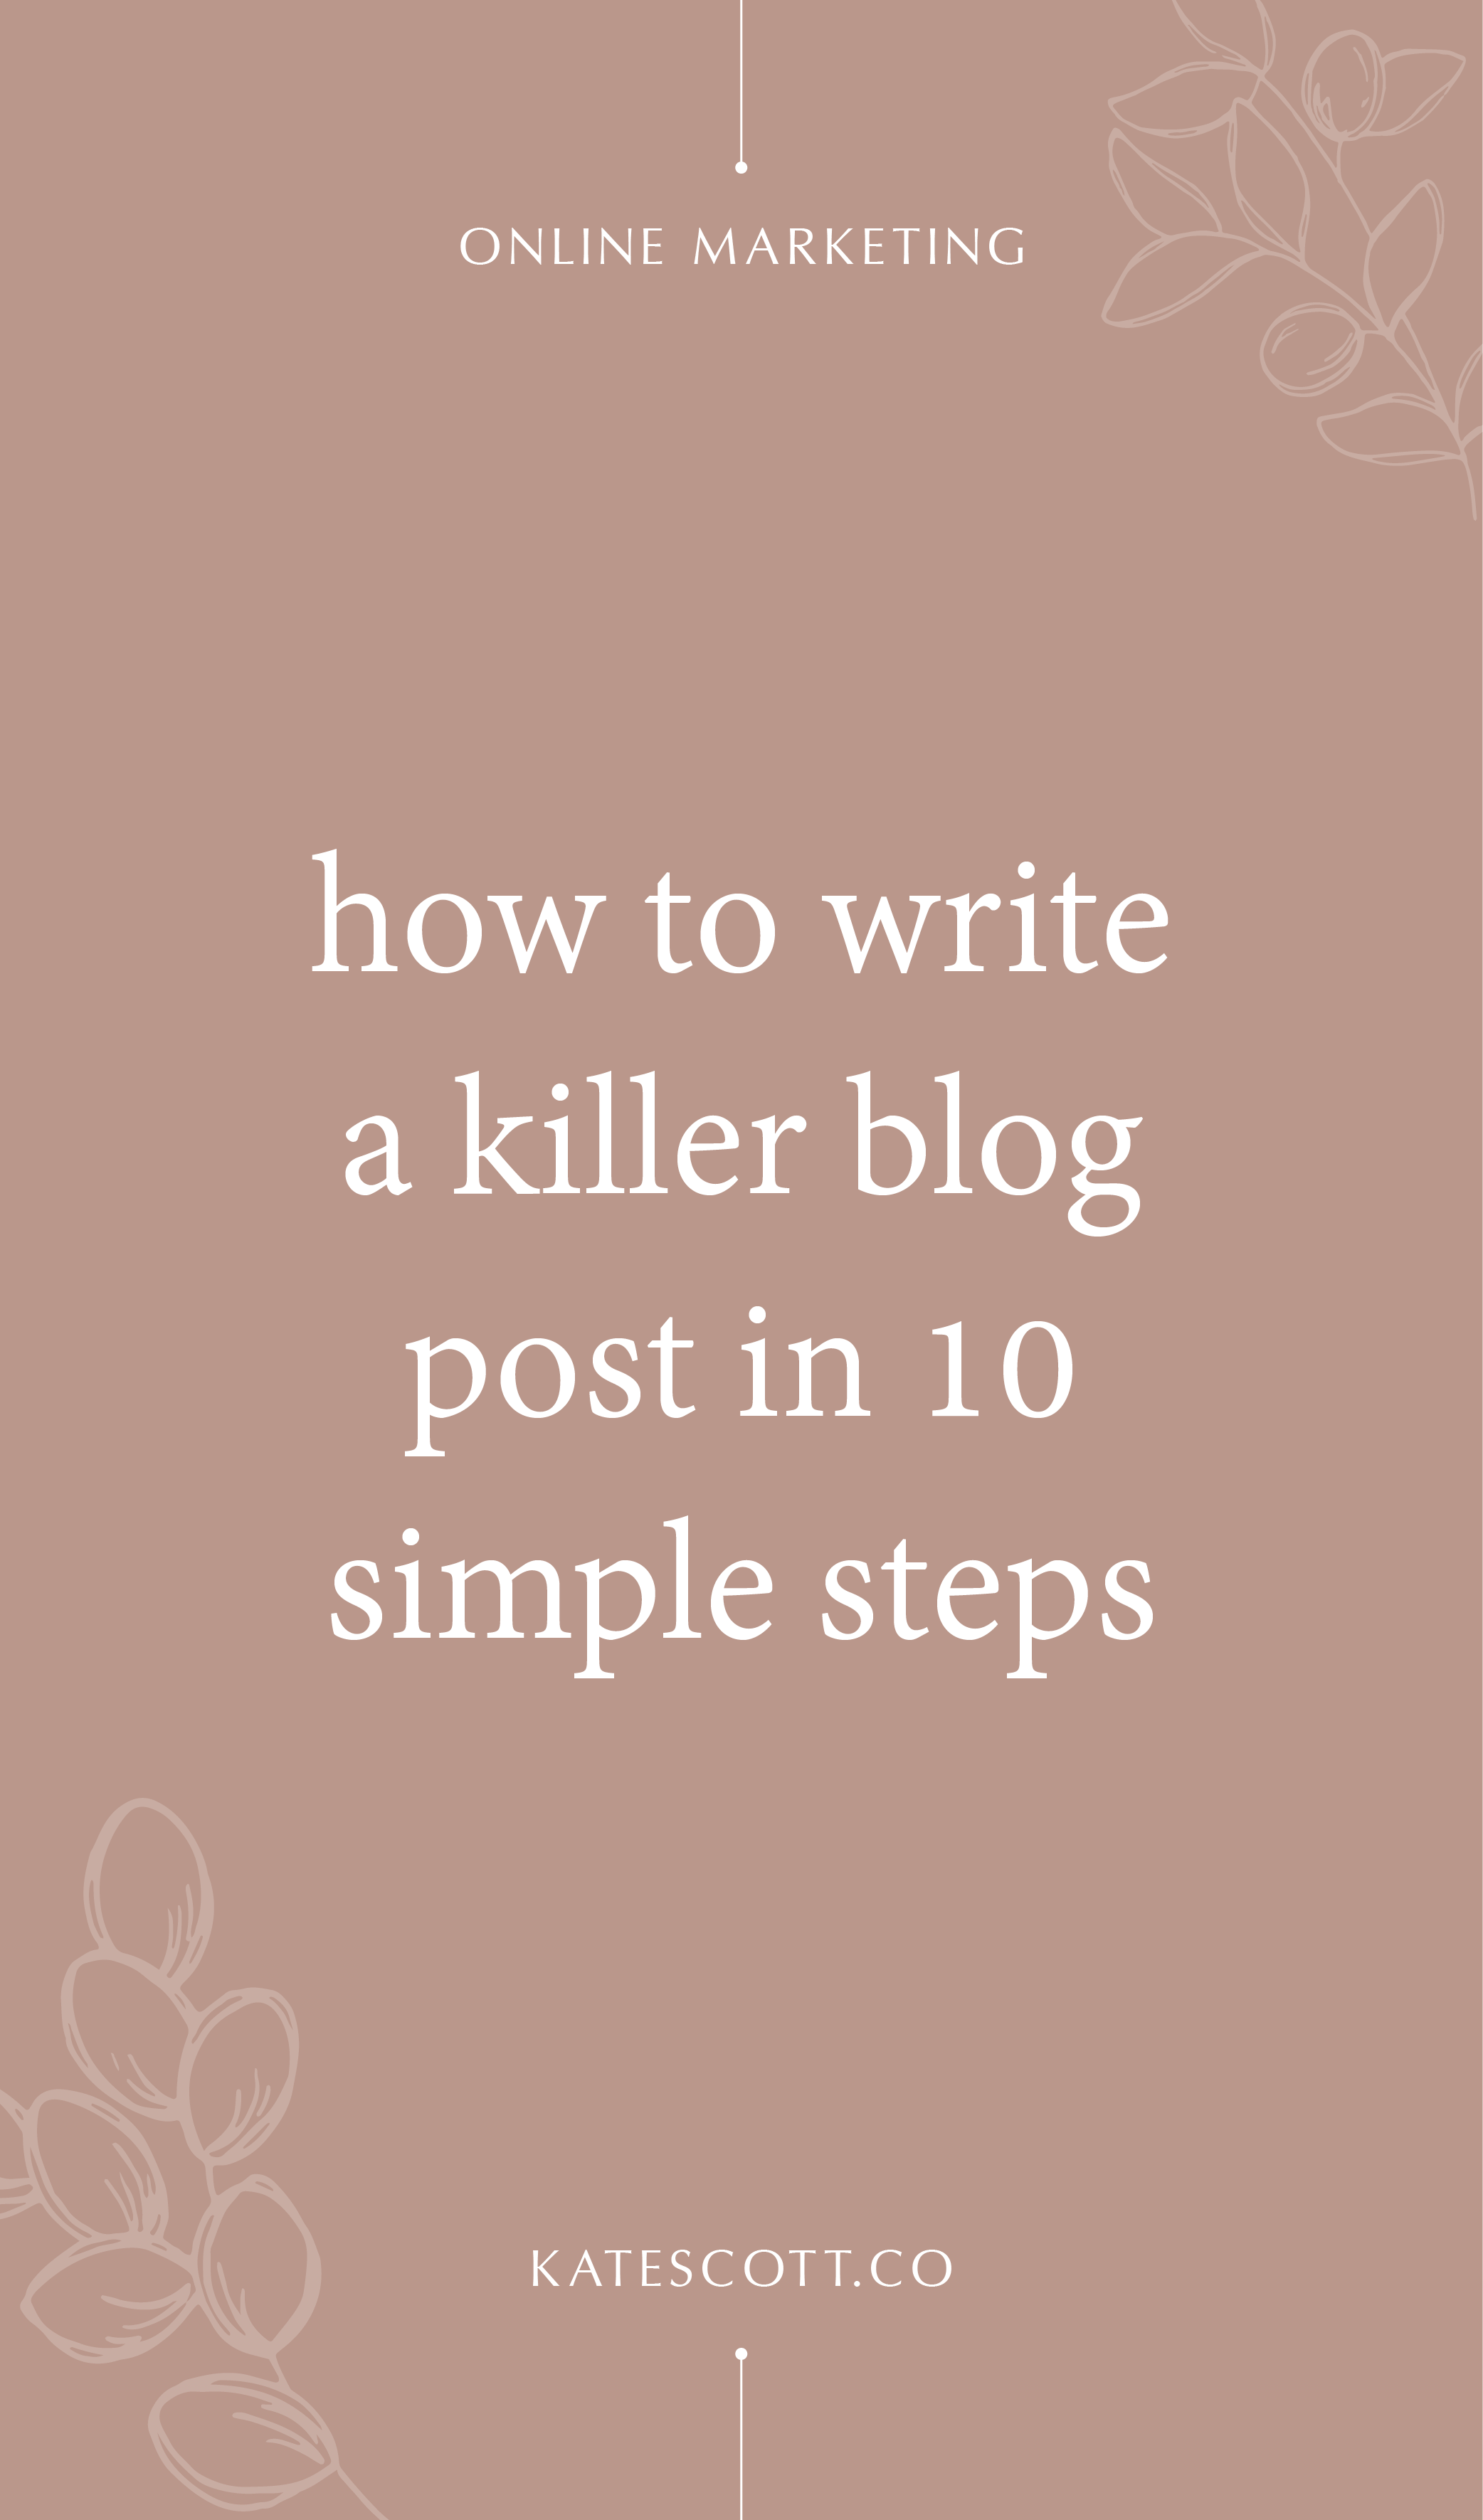 Are you struggling to create epic blog content? This step-by-step guide will walk you through everything you need to know to write killer blog posts that CONVERT. | How to Write a Blog Post | Blogging for Beginners Step by Step | How to Blog for Business | How to Blog for Beginners | Blog Post Template | First Blog Post | Blog Help | #Blogging #Bloggers #BloggingTips #Entrepreneur #Entrepreneurship